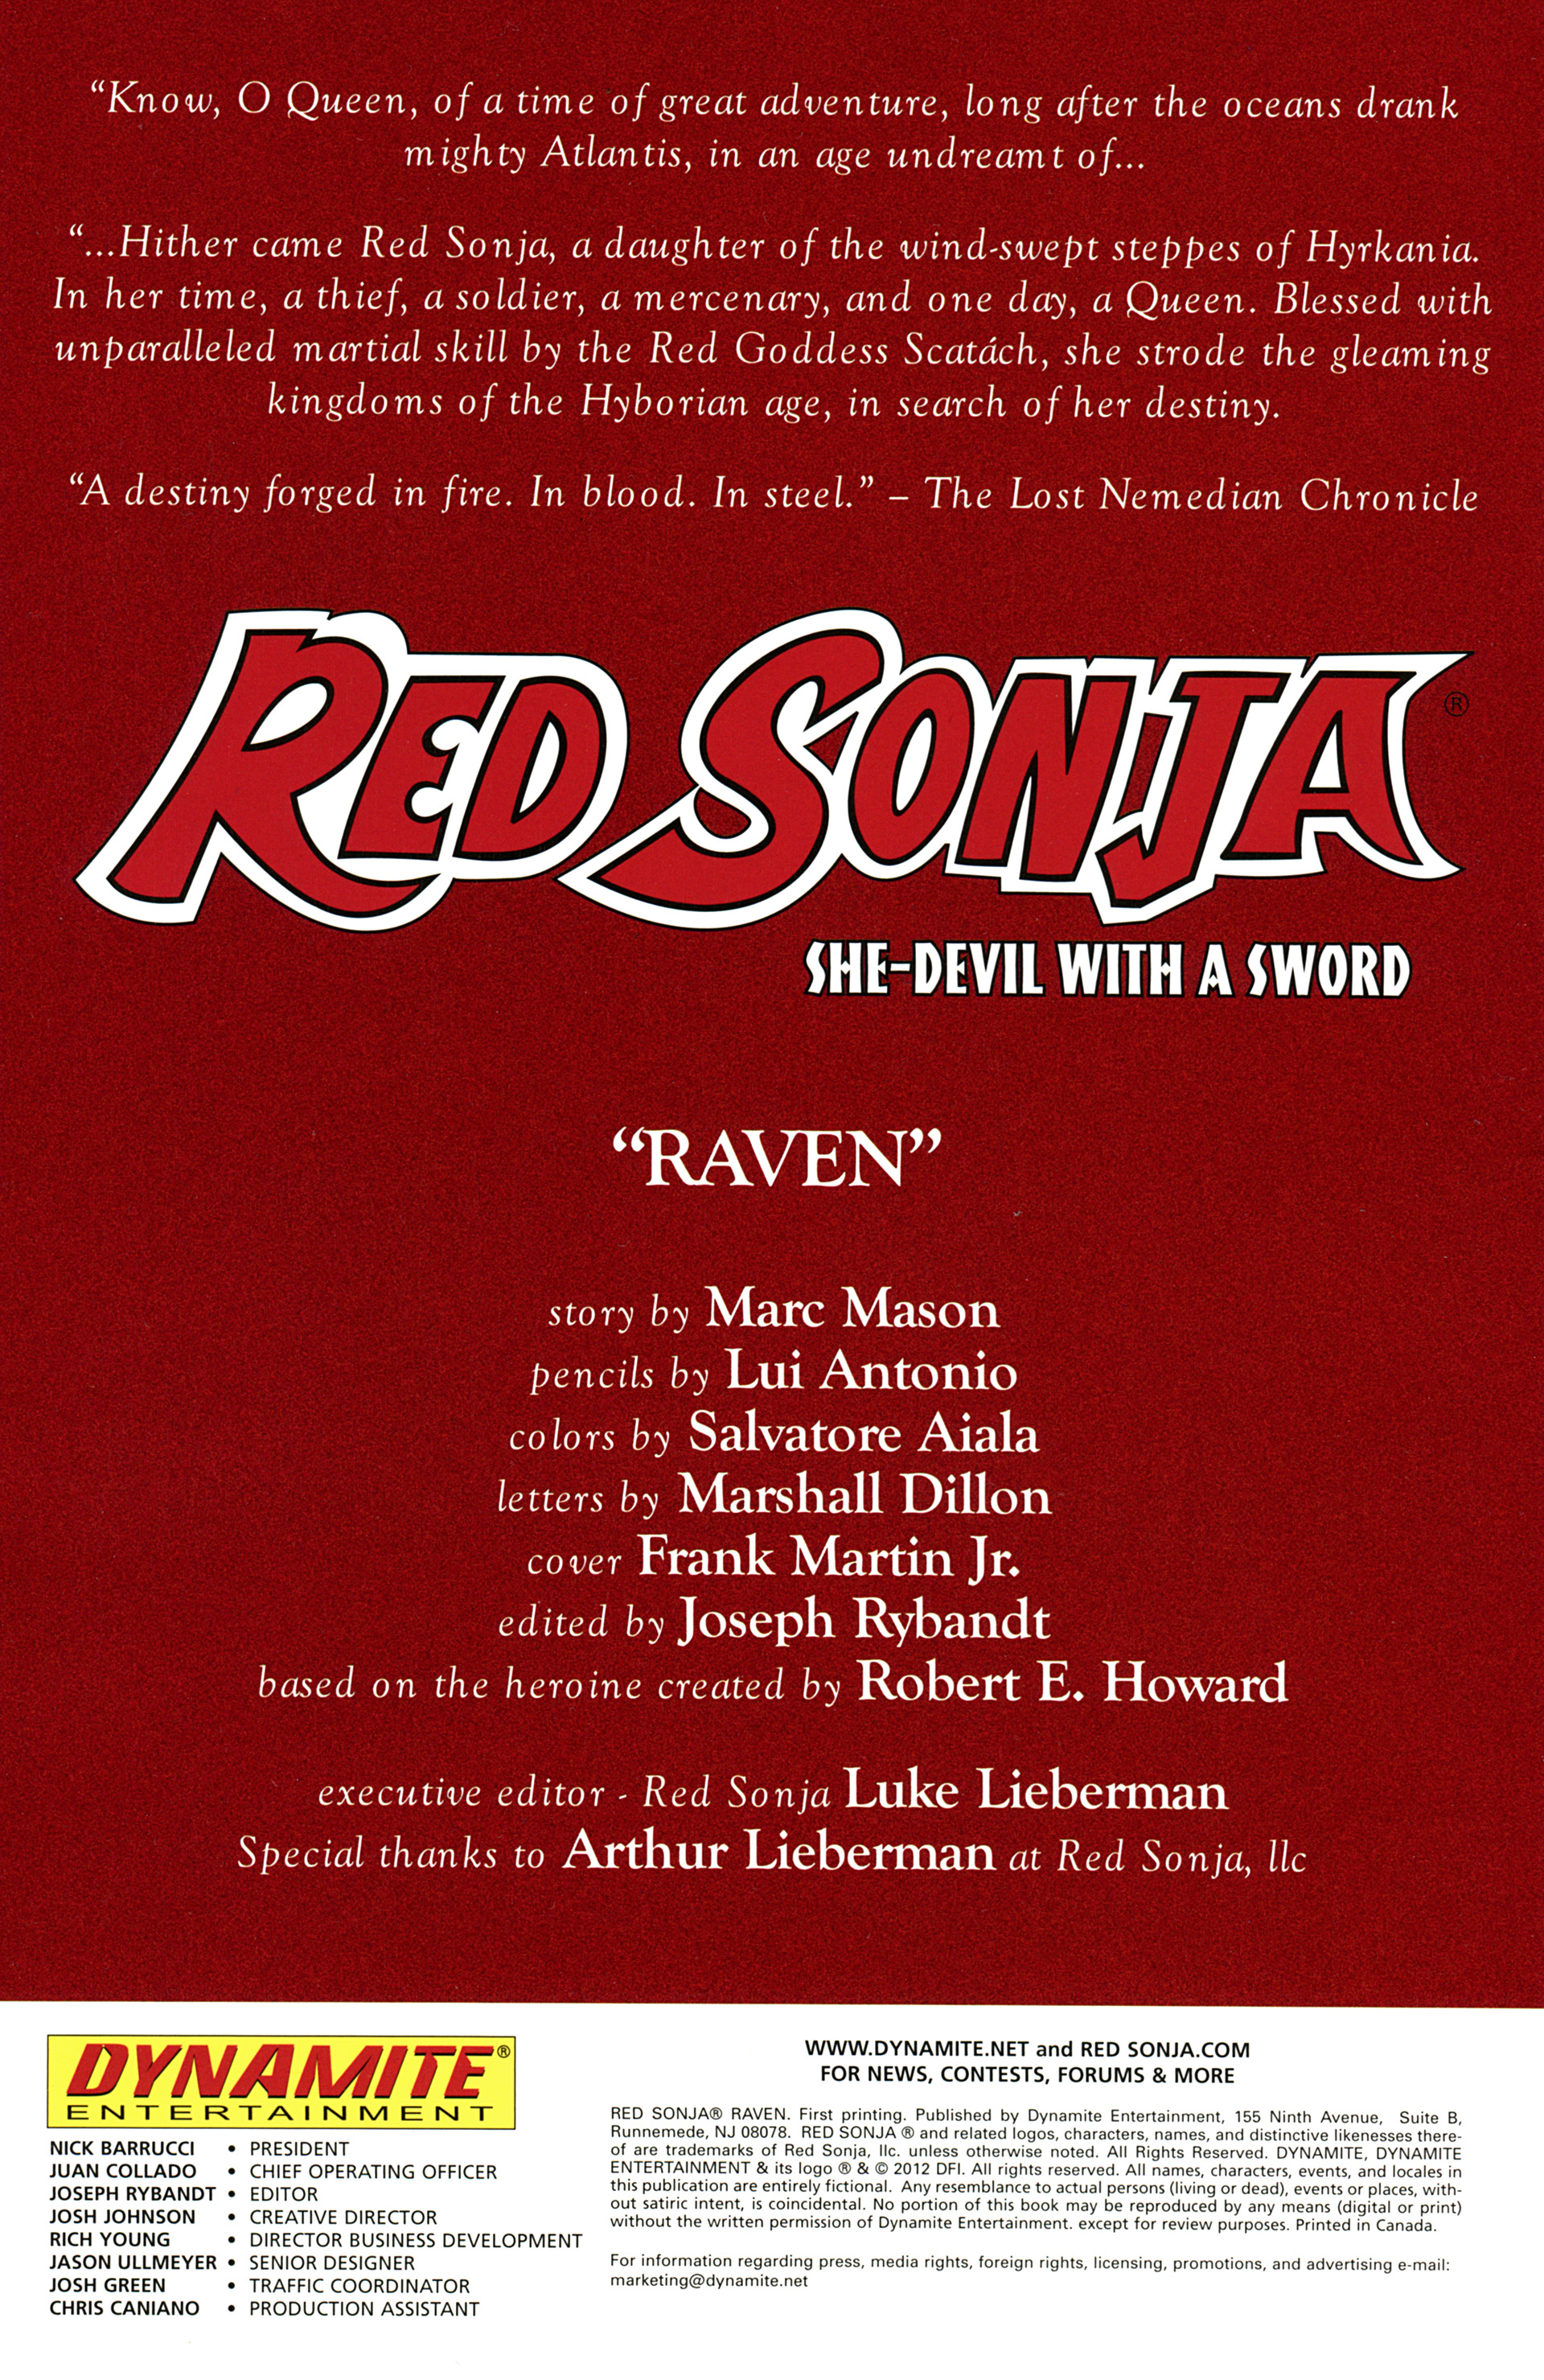 Red Sonja Raven #Full - Read Red Sonja Raven Issue #Full Page 2